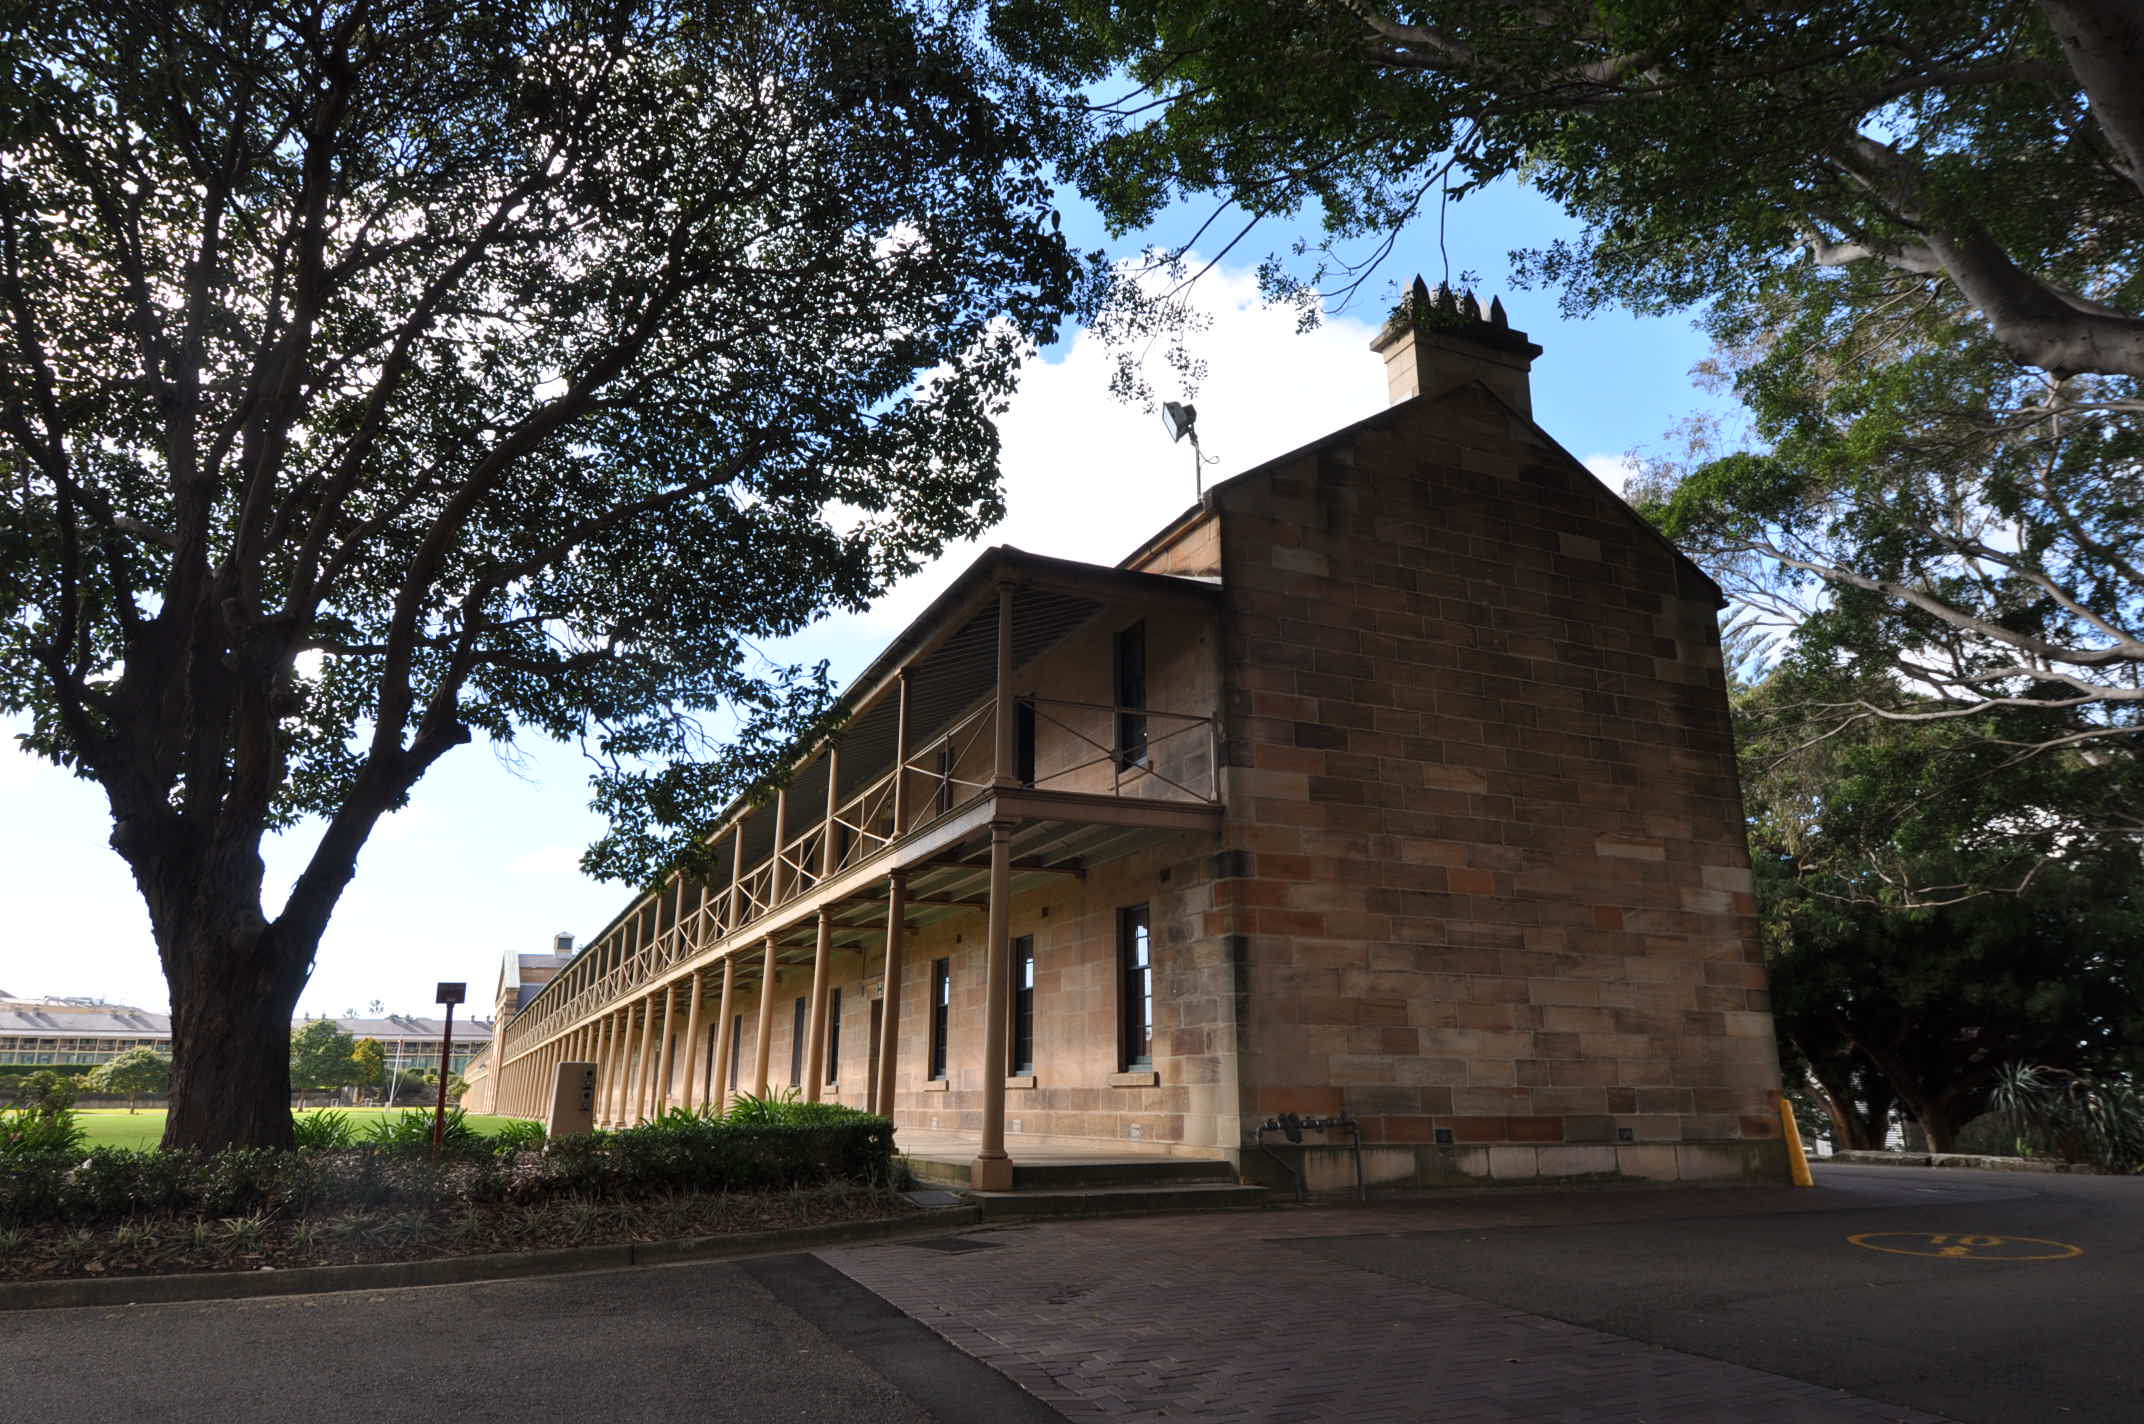 Victoria Barracks